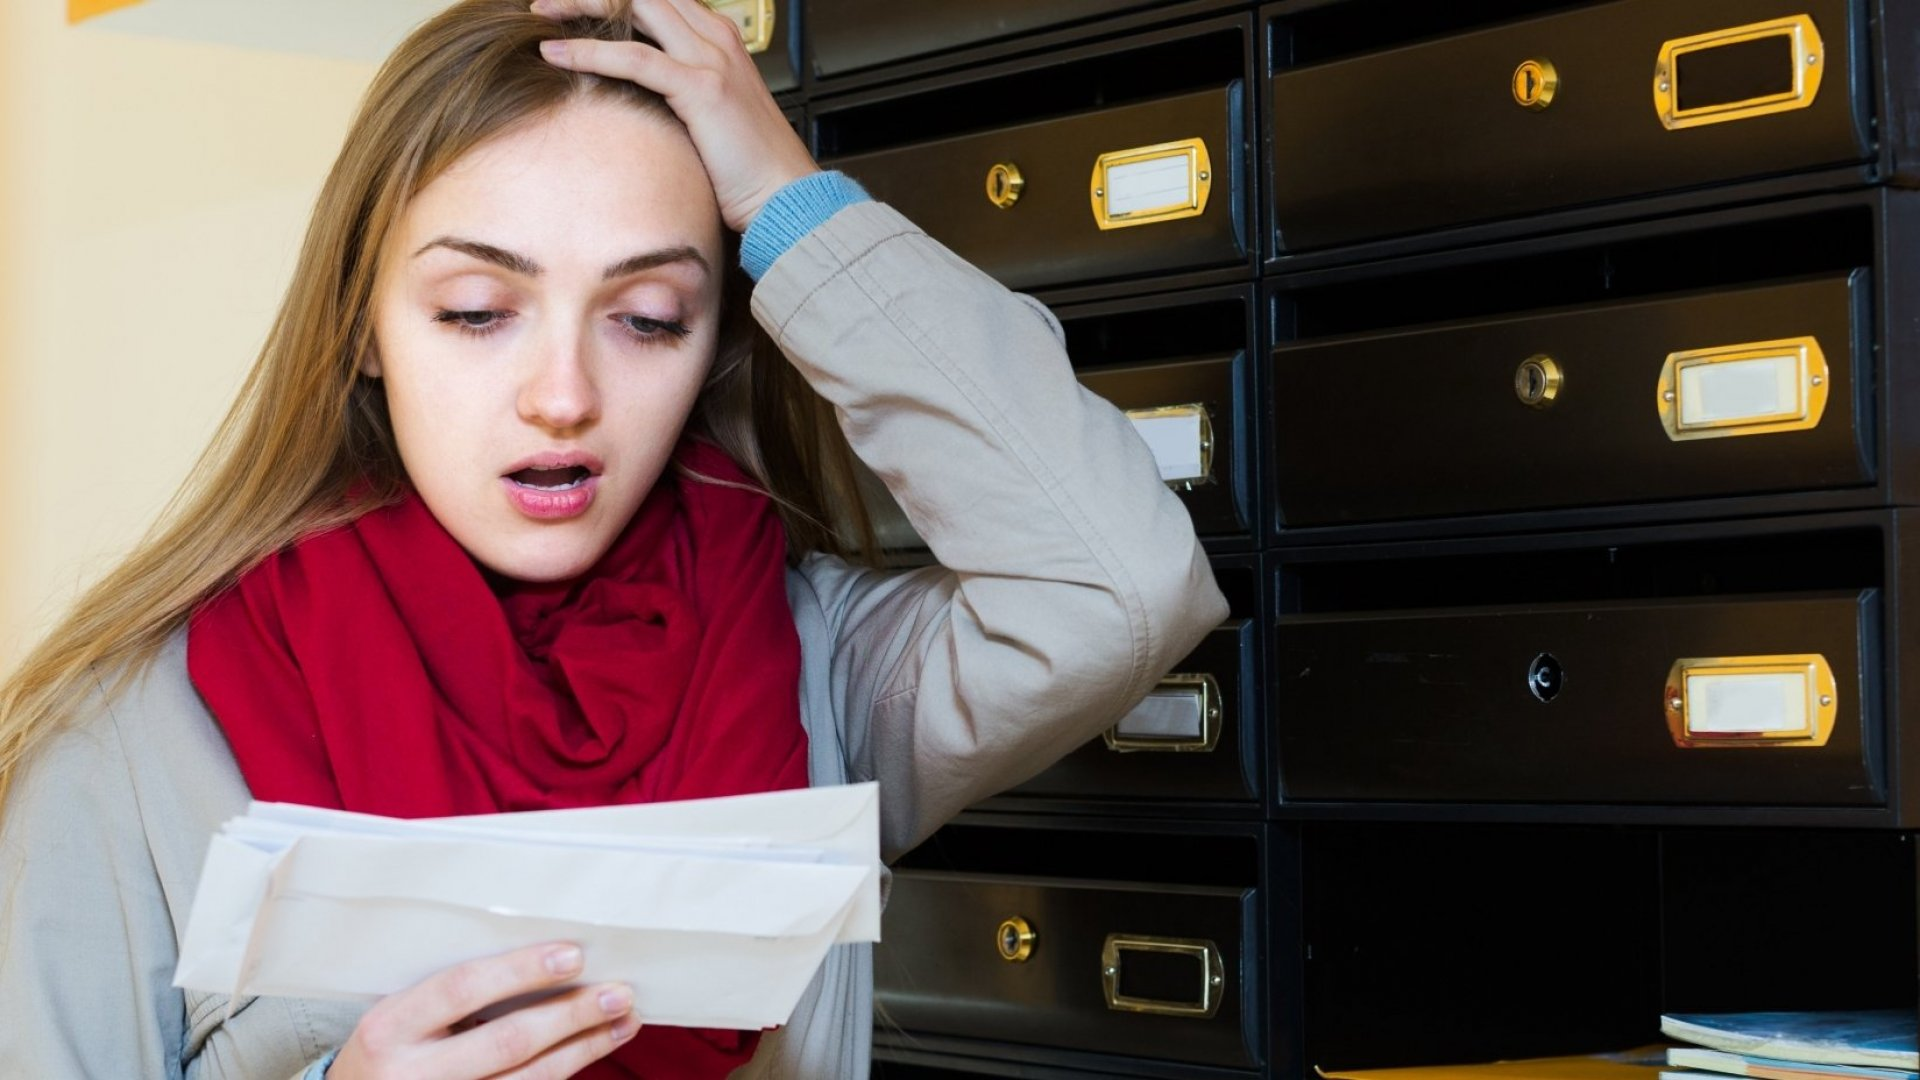 7 Emotionally Intelligent Ways to Deliver Really Bad News